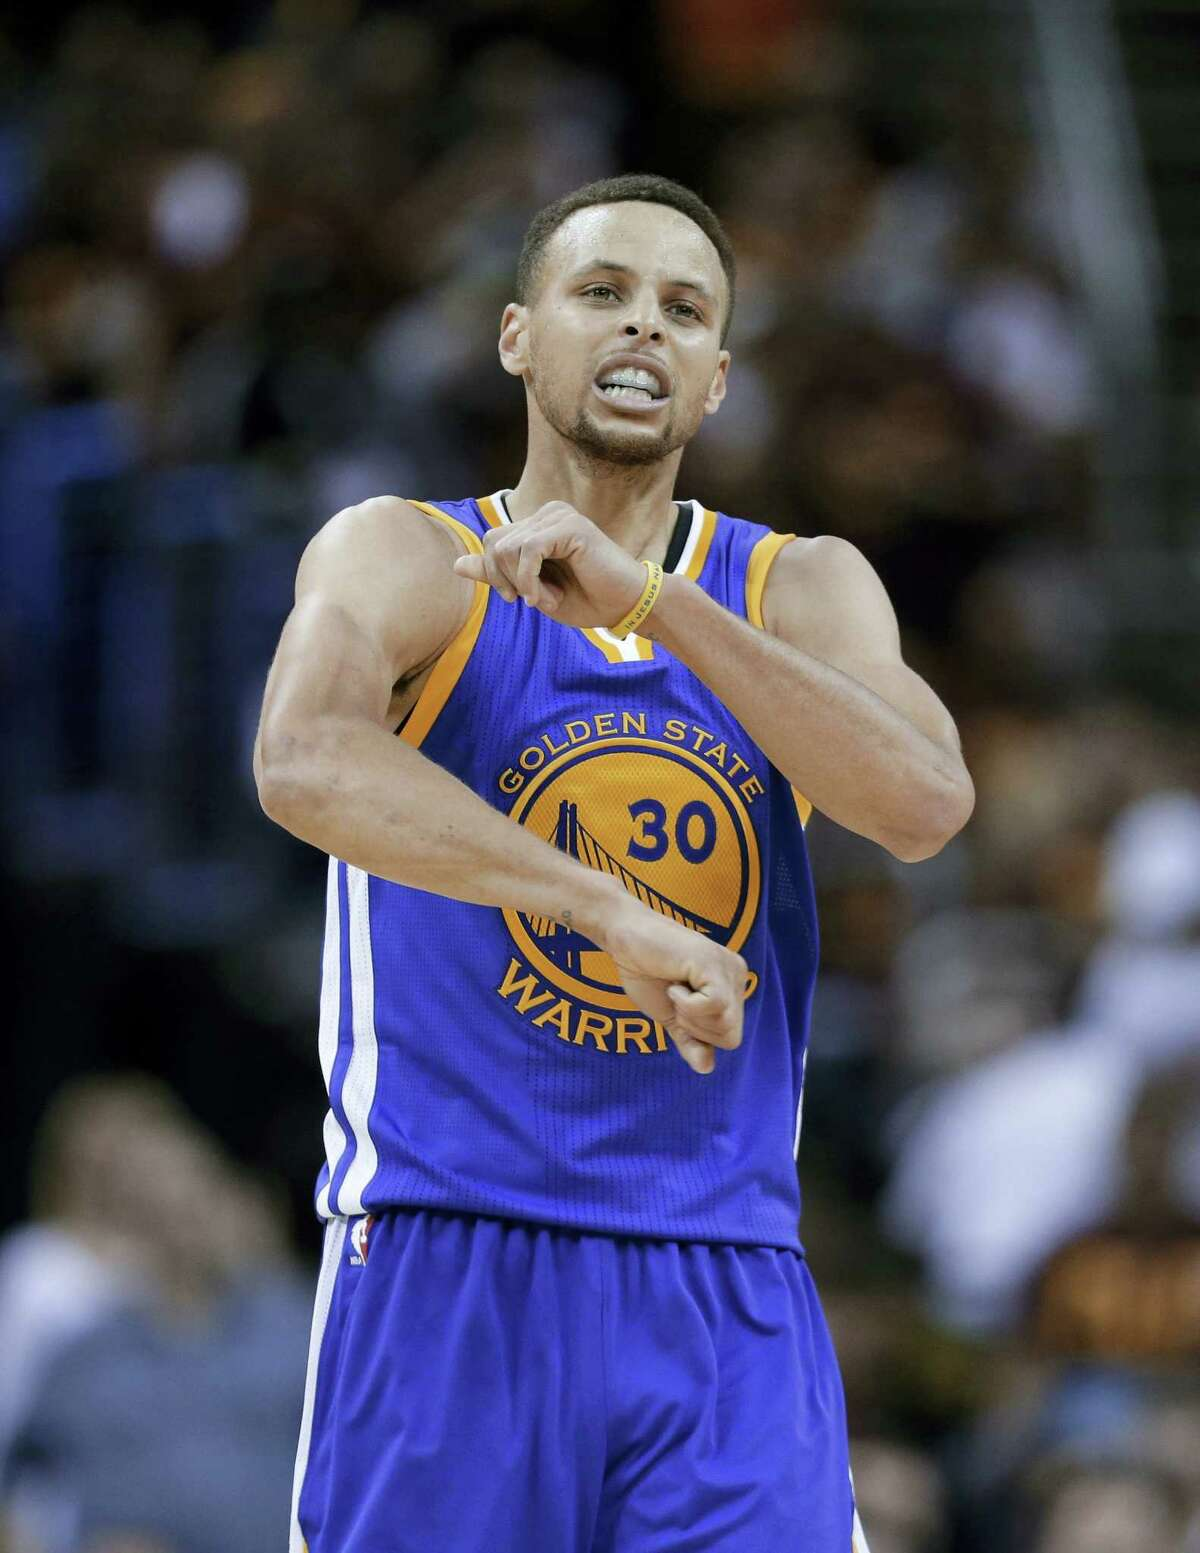 Warriors guard Stephen Curry celebrates a basket against the Cavaliers during the second half on Friday.